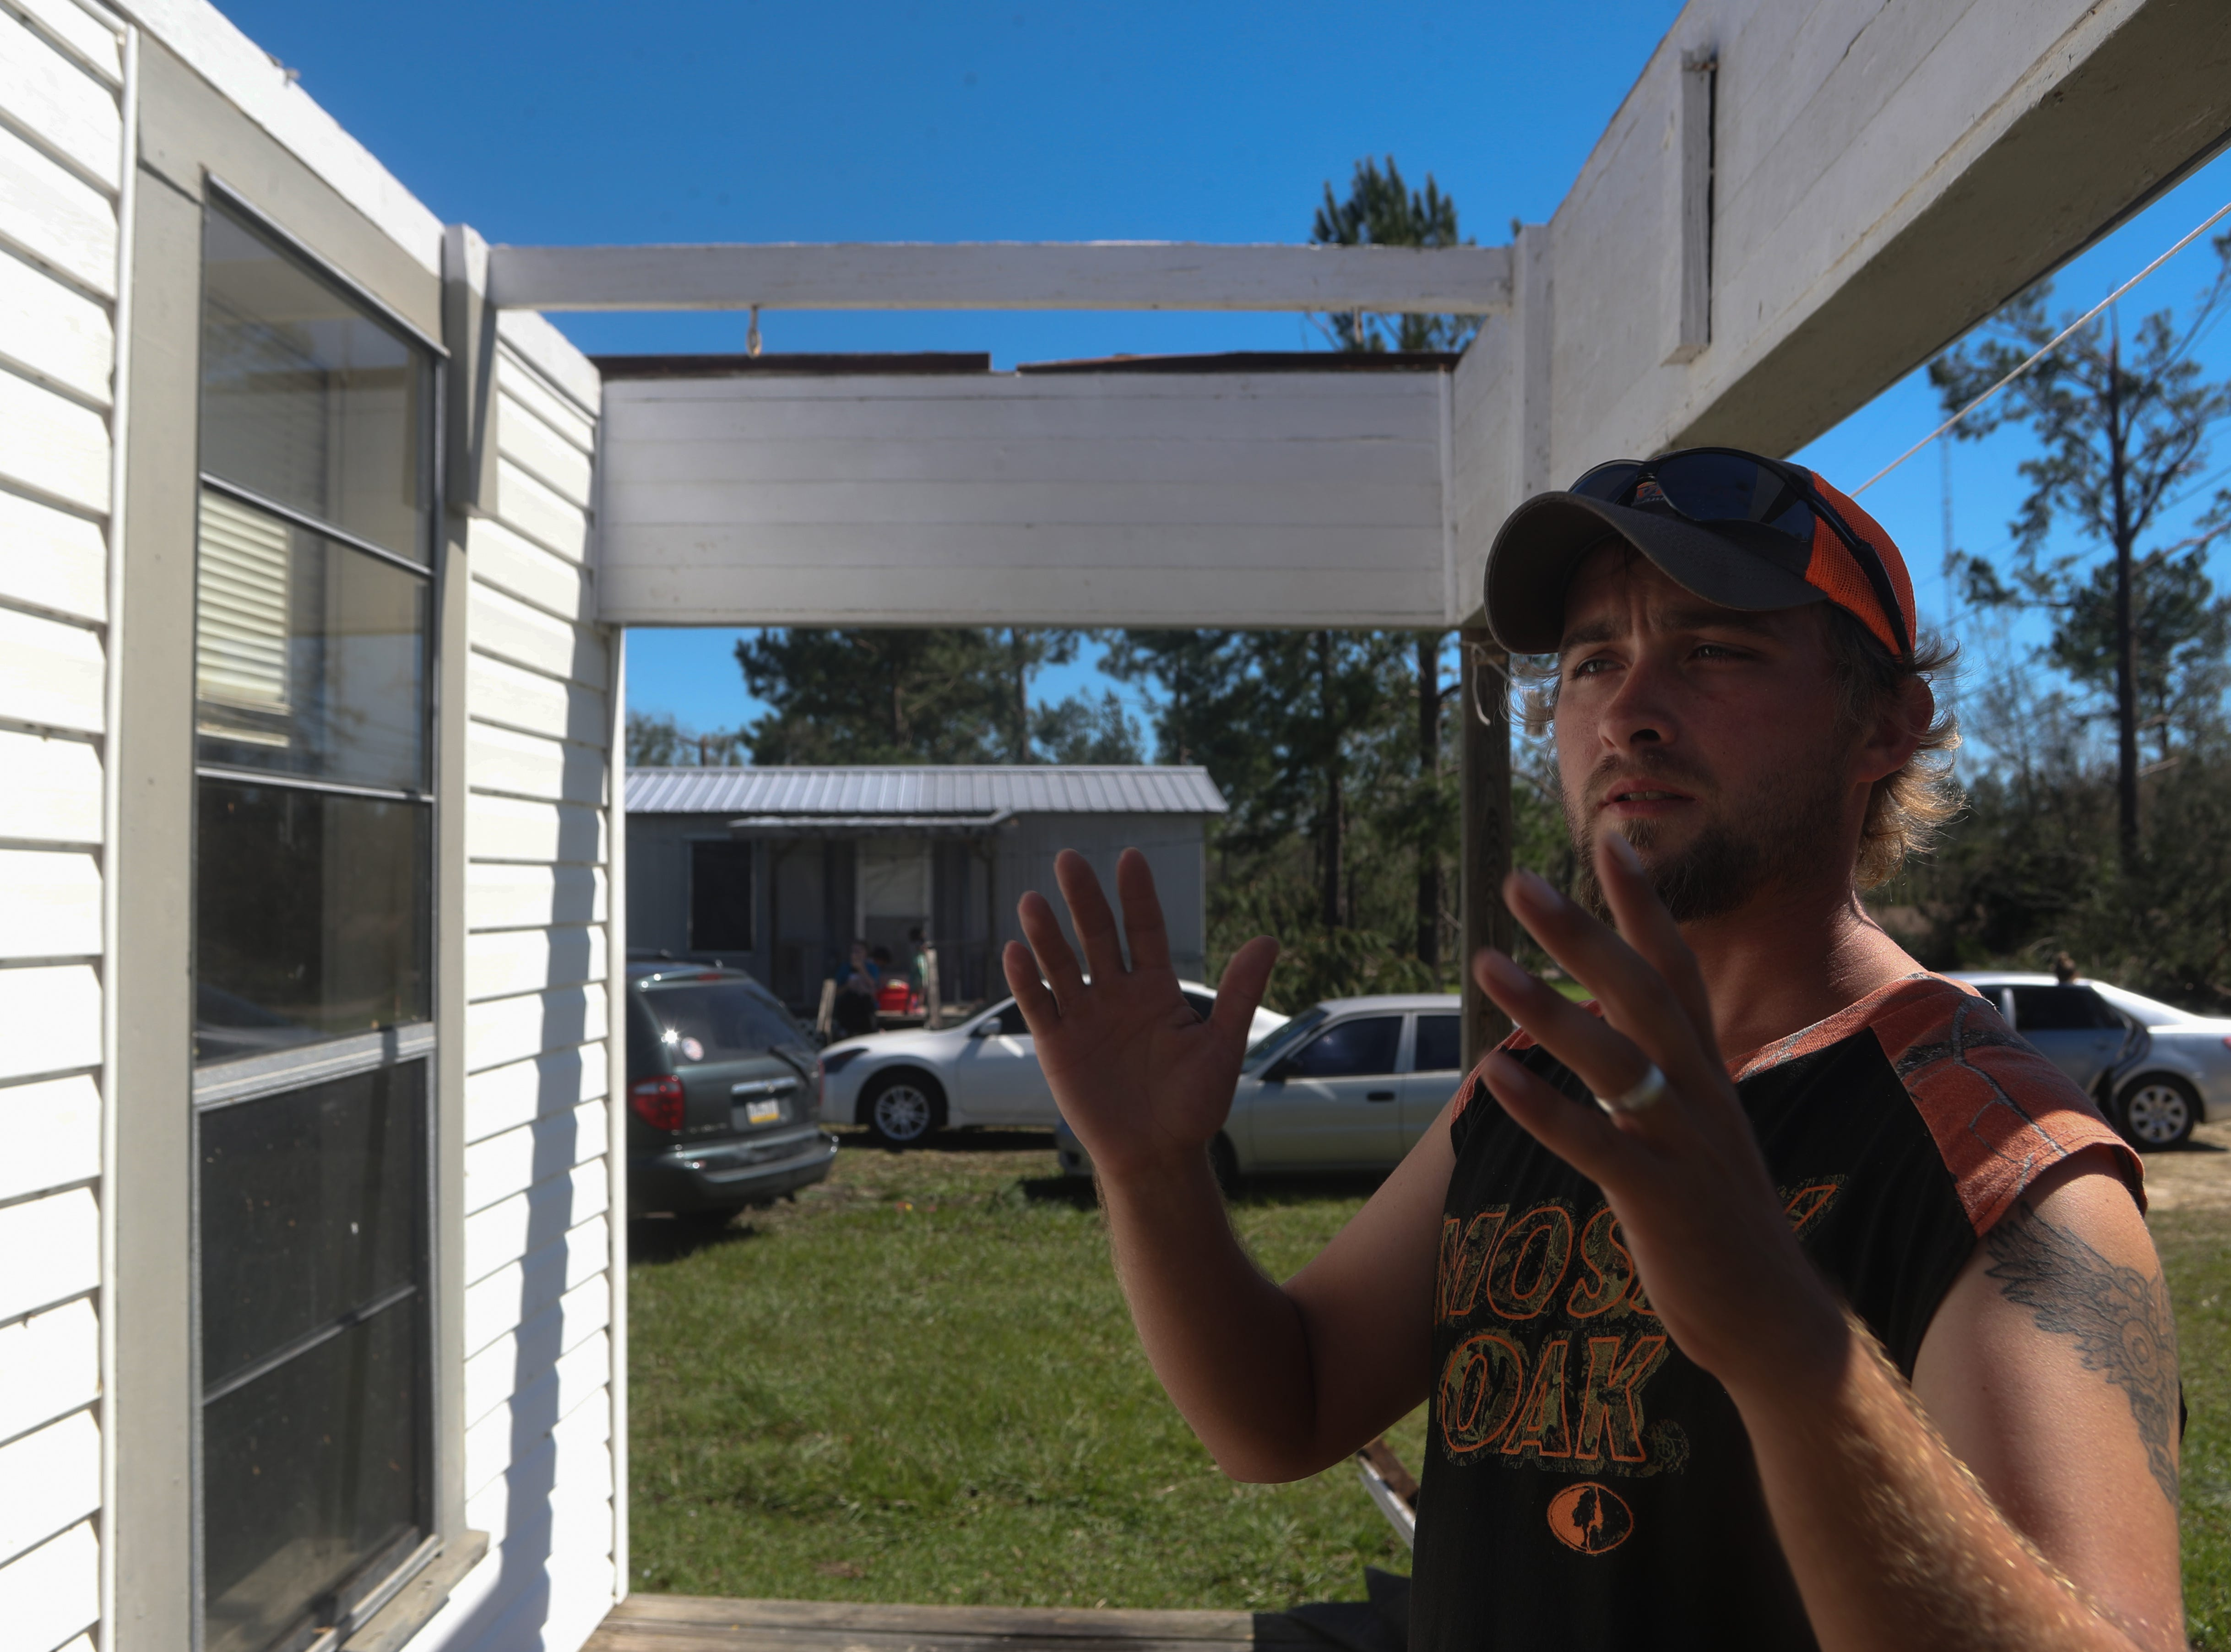 Caleb Hoffman reflects on the loss of the roof of his home in Blountstown, Fla. in the aftermath of Hurricane Michael Friday, Oct. 12, 2018. Hoffman and his young family moved to Blountstown from Pennsylvania only eight months ago.